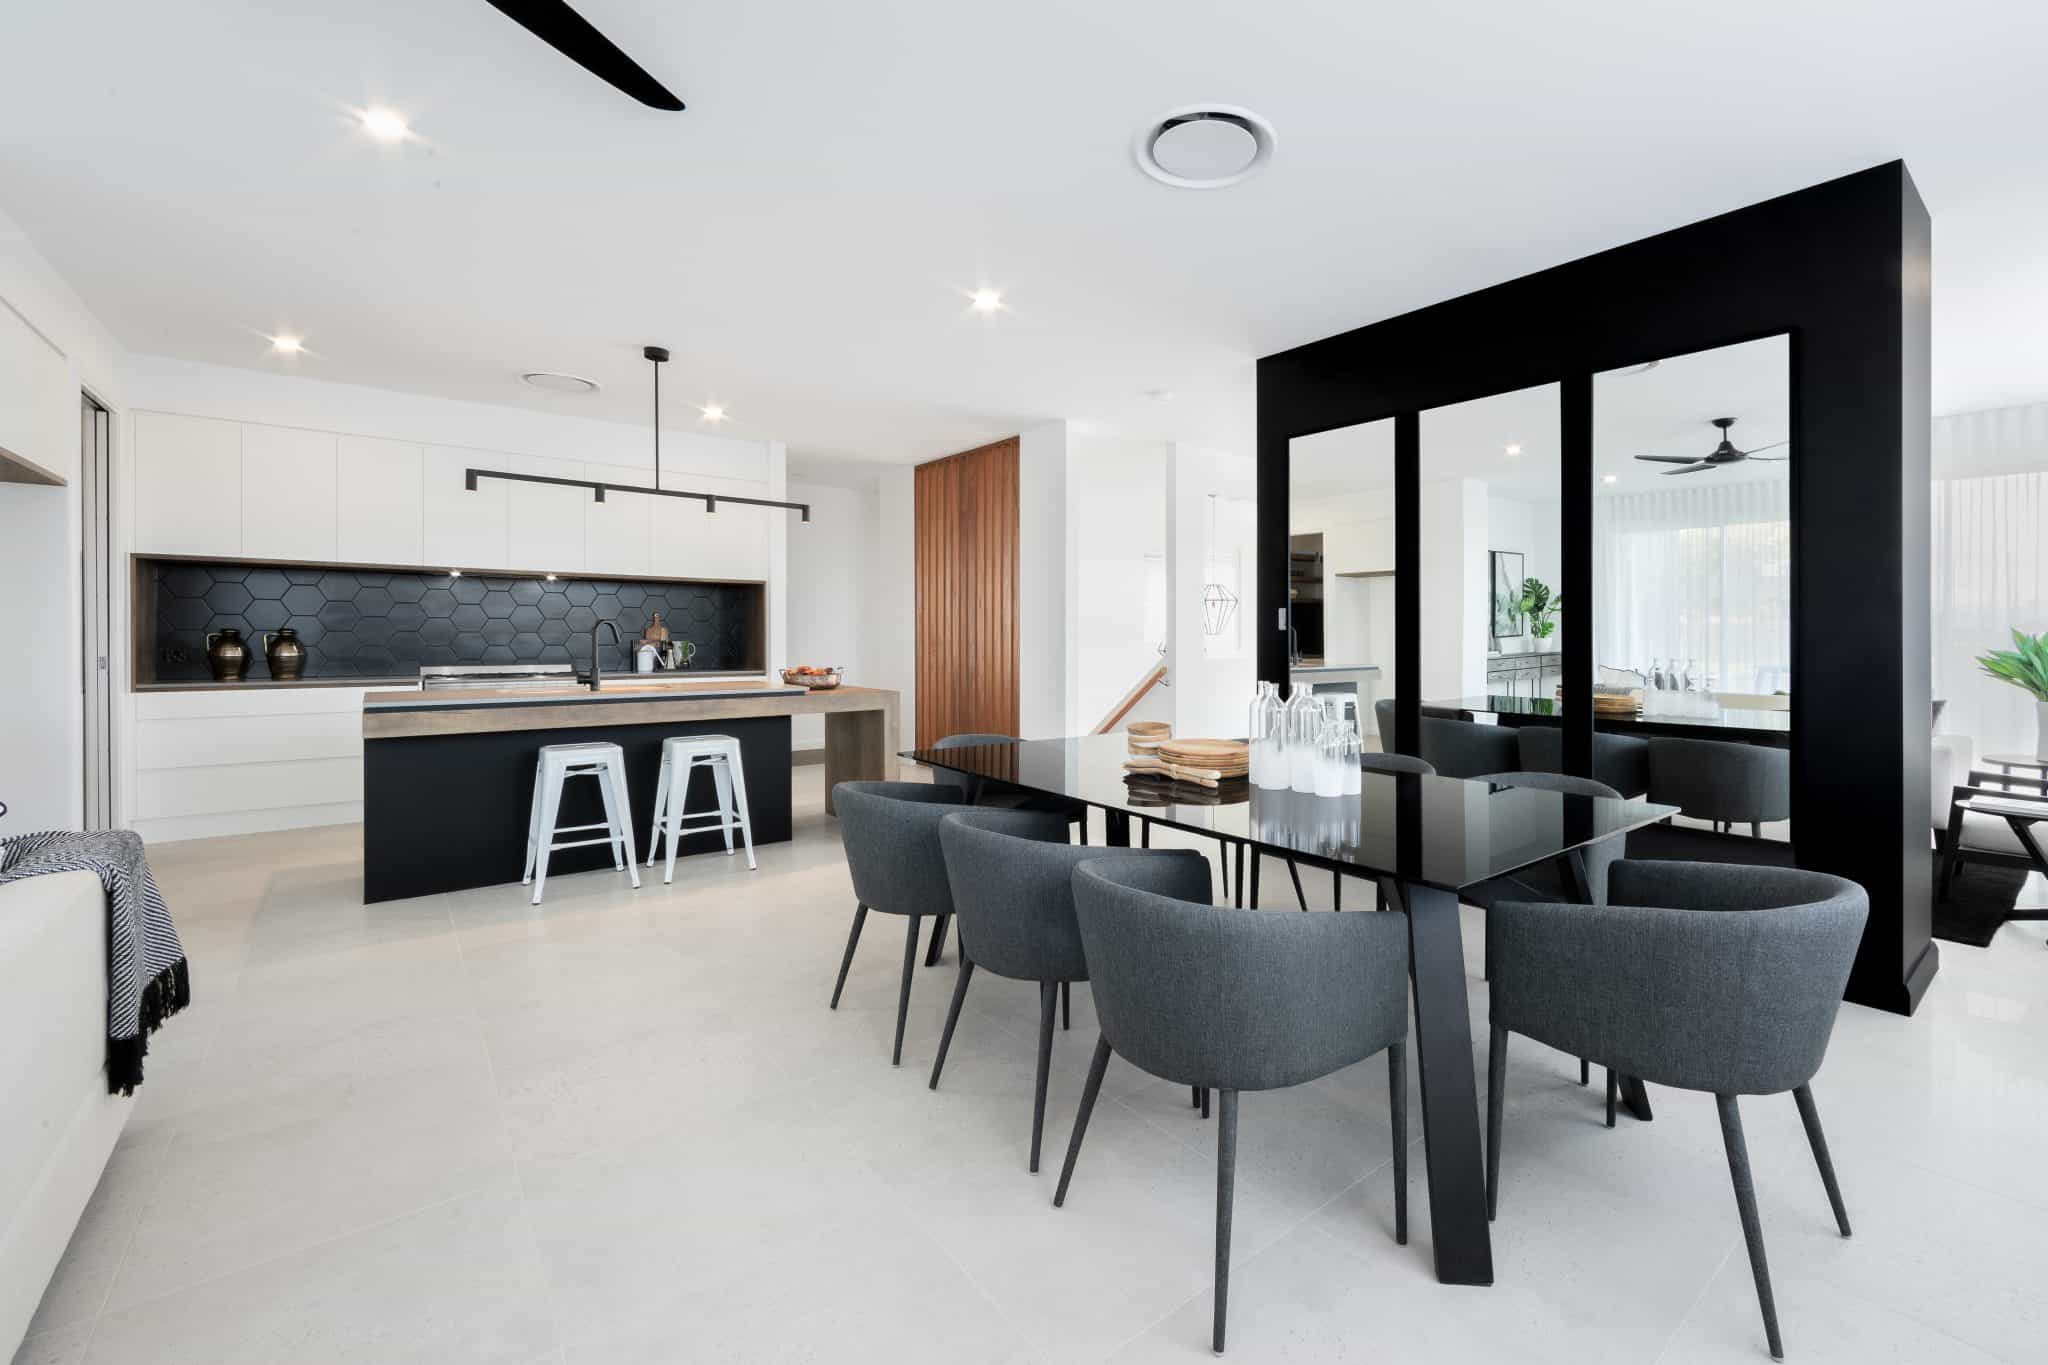 2018 Houzz & Home Trends Study – Australia, Reveal A Renovation Boom!